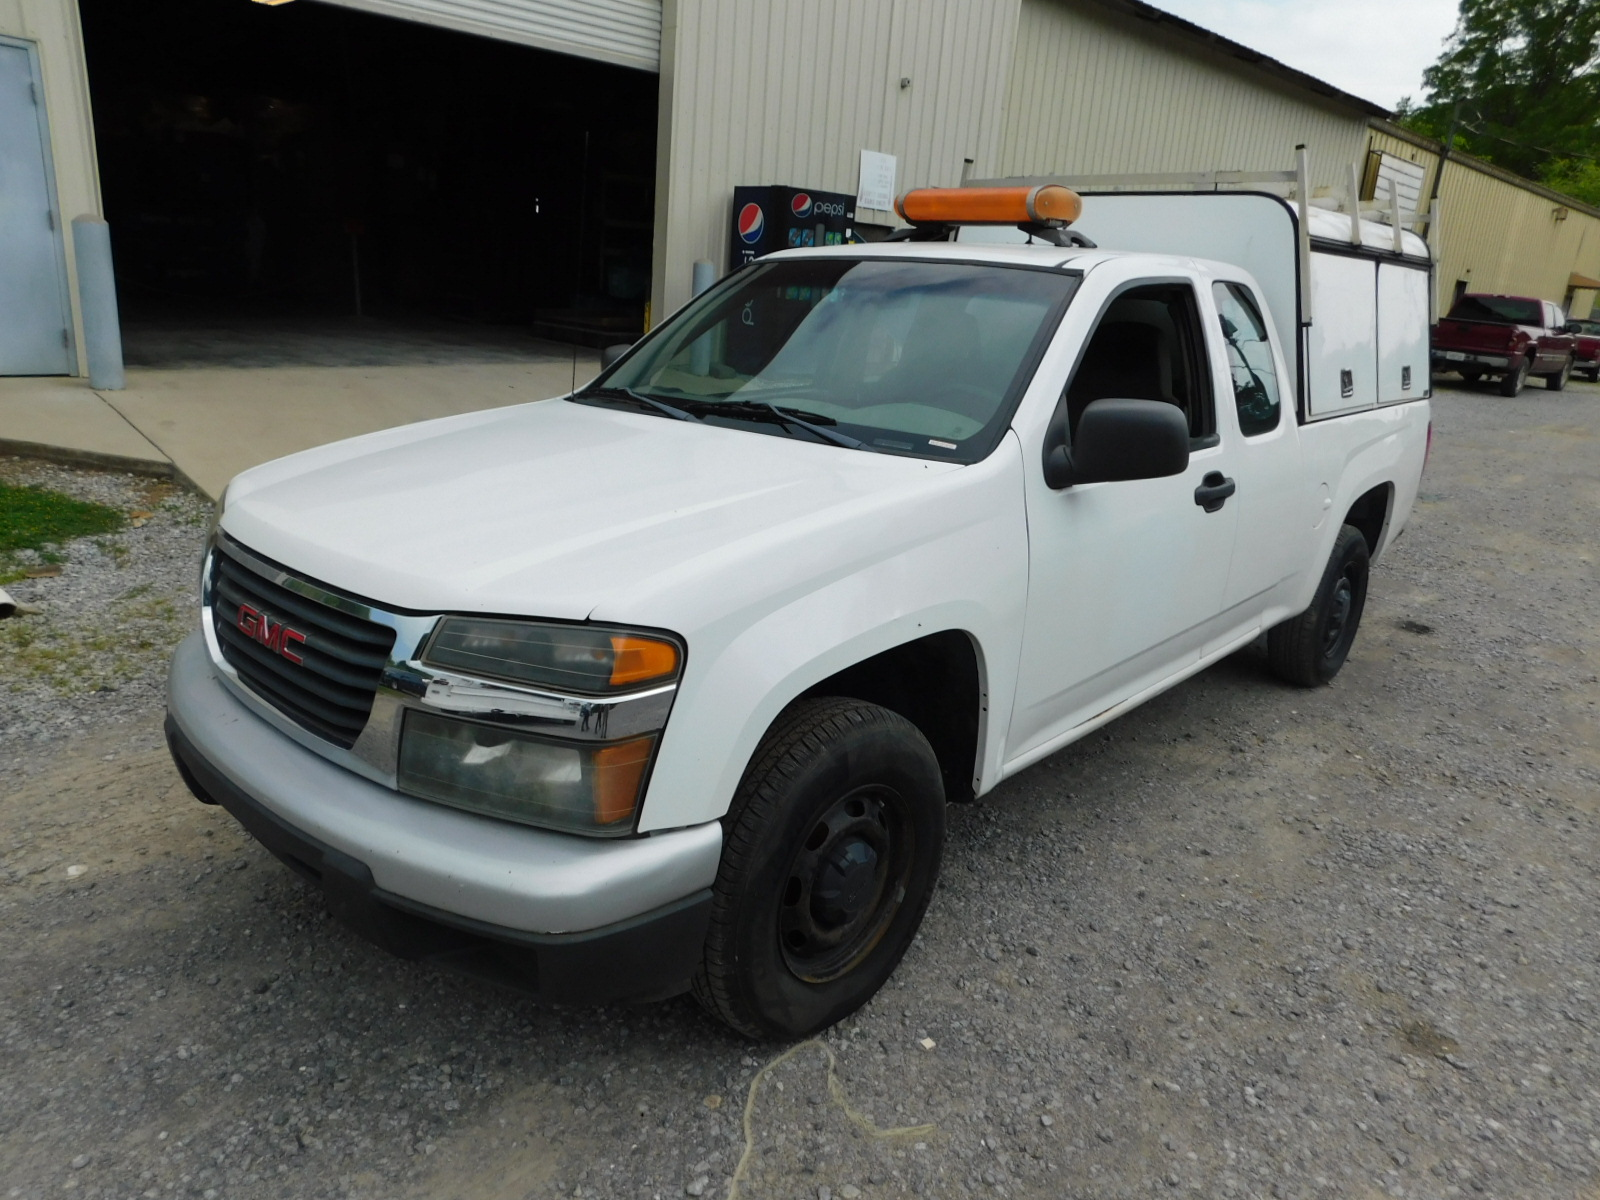 hight resolution of lot 27a 2005 gmc canyon extended cab pickup truck 4 cylinder automatic